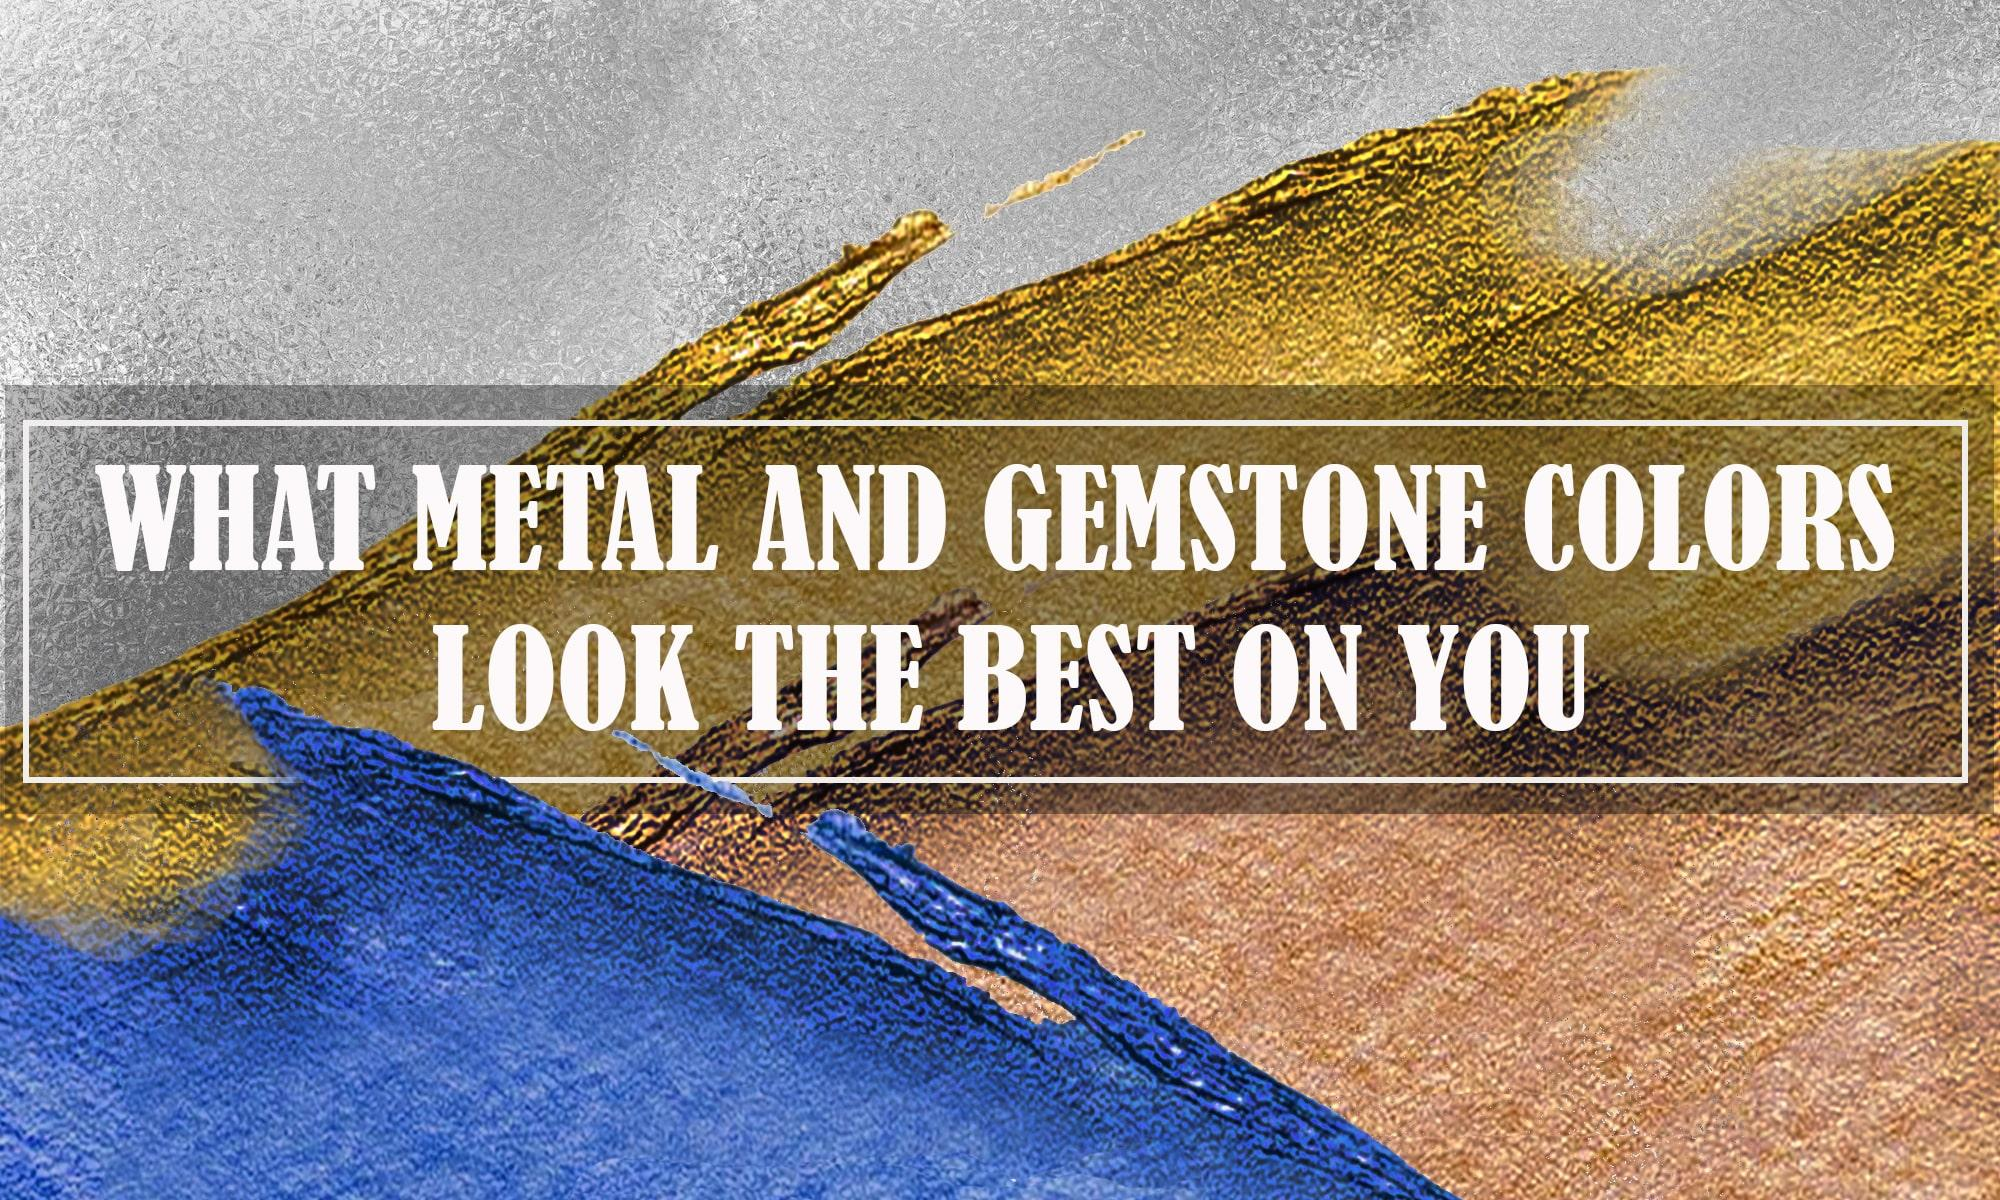 Blog on Metal & Gemstone Colors that would look best on you